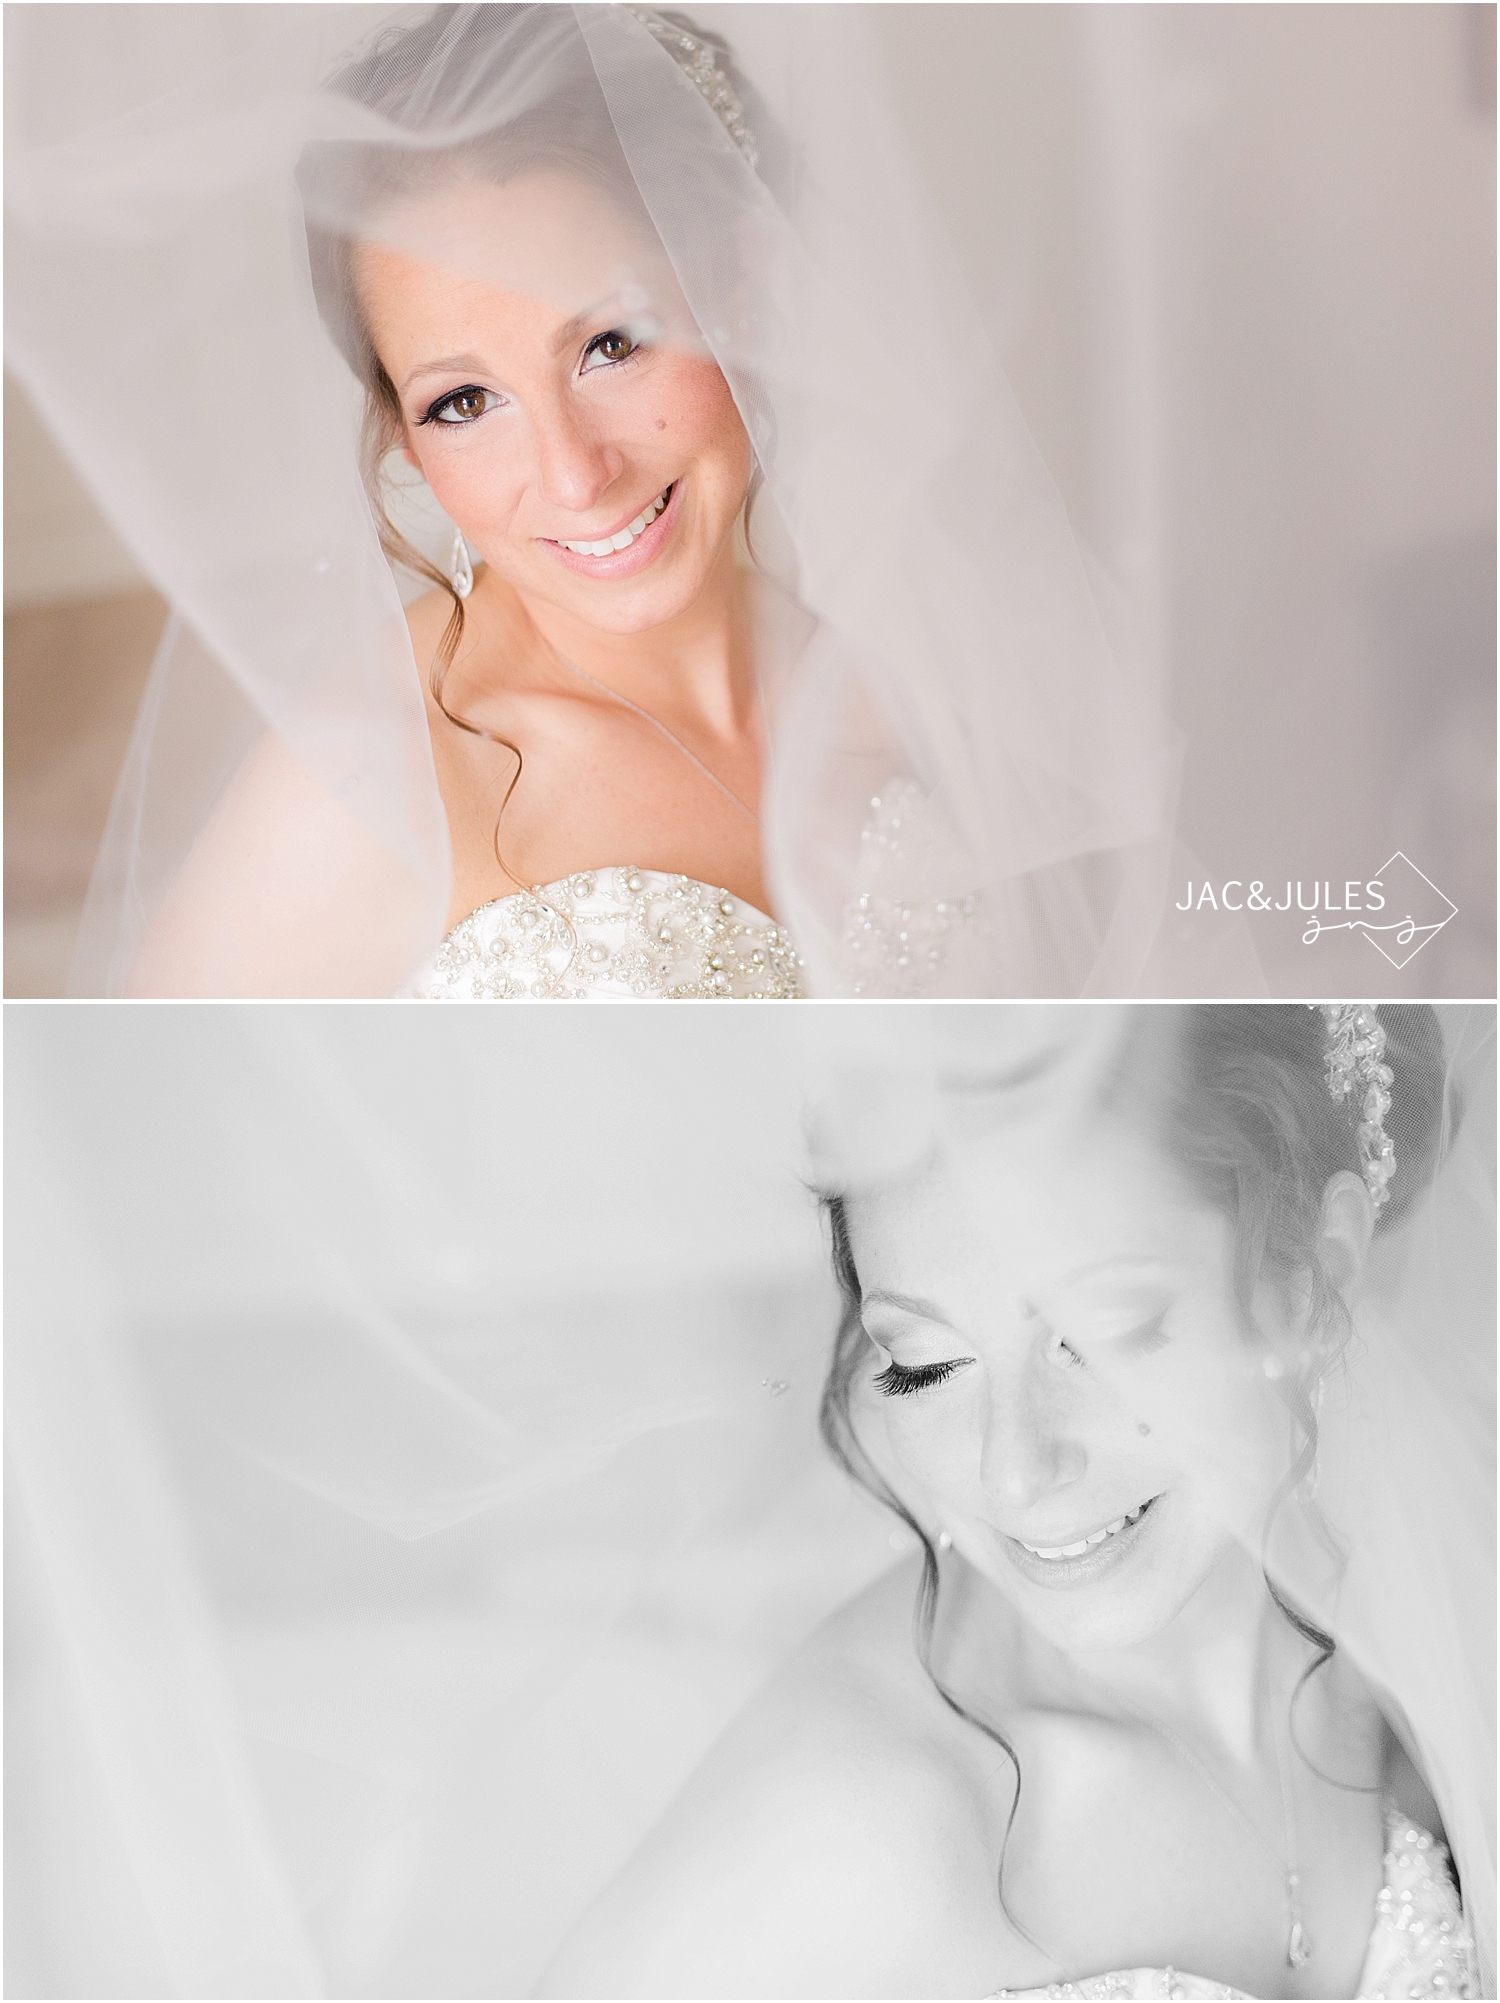 jacnjules takes bridal portrait at a wedding at Wilshire Grand Hotel in West Orange, NJ